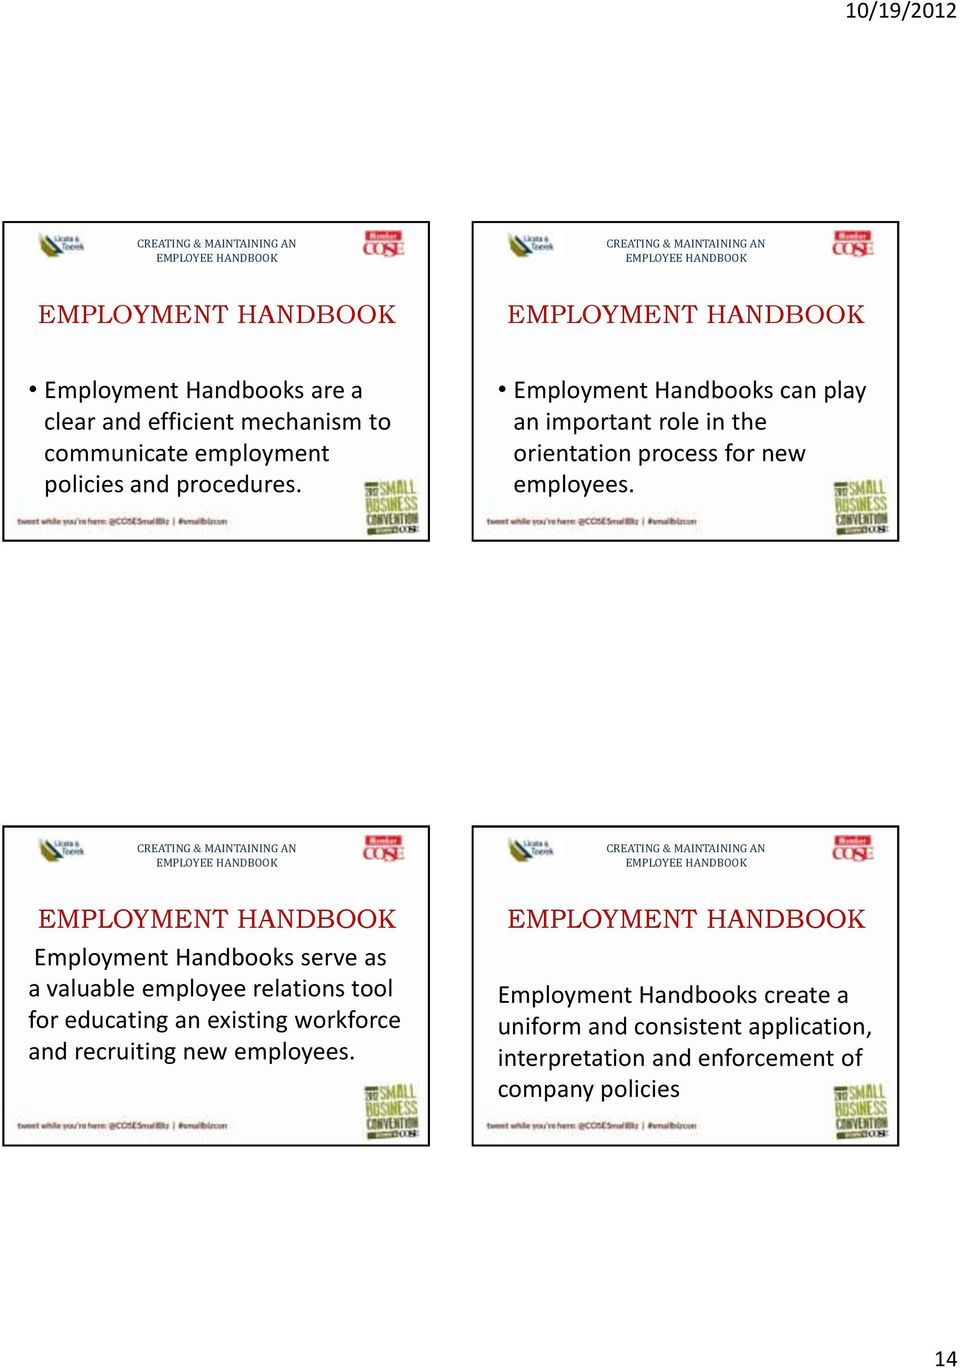 Employment Handbooks serve as a valuable employee relations tool for educating an existing workforce and